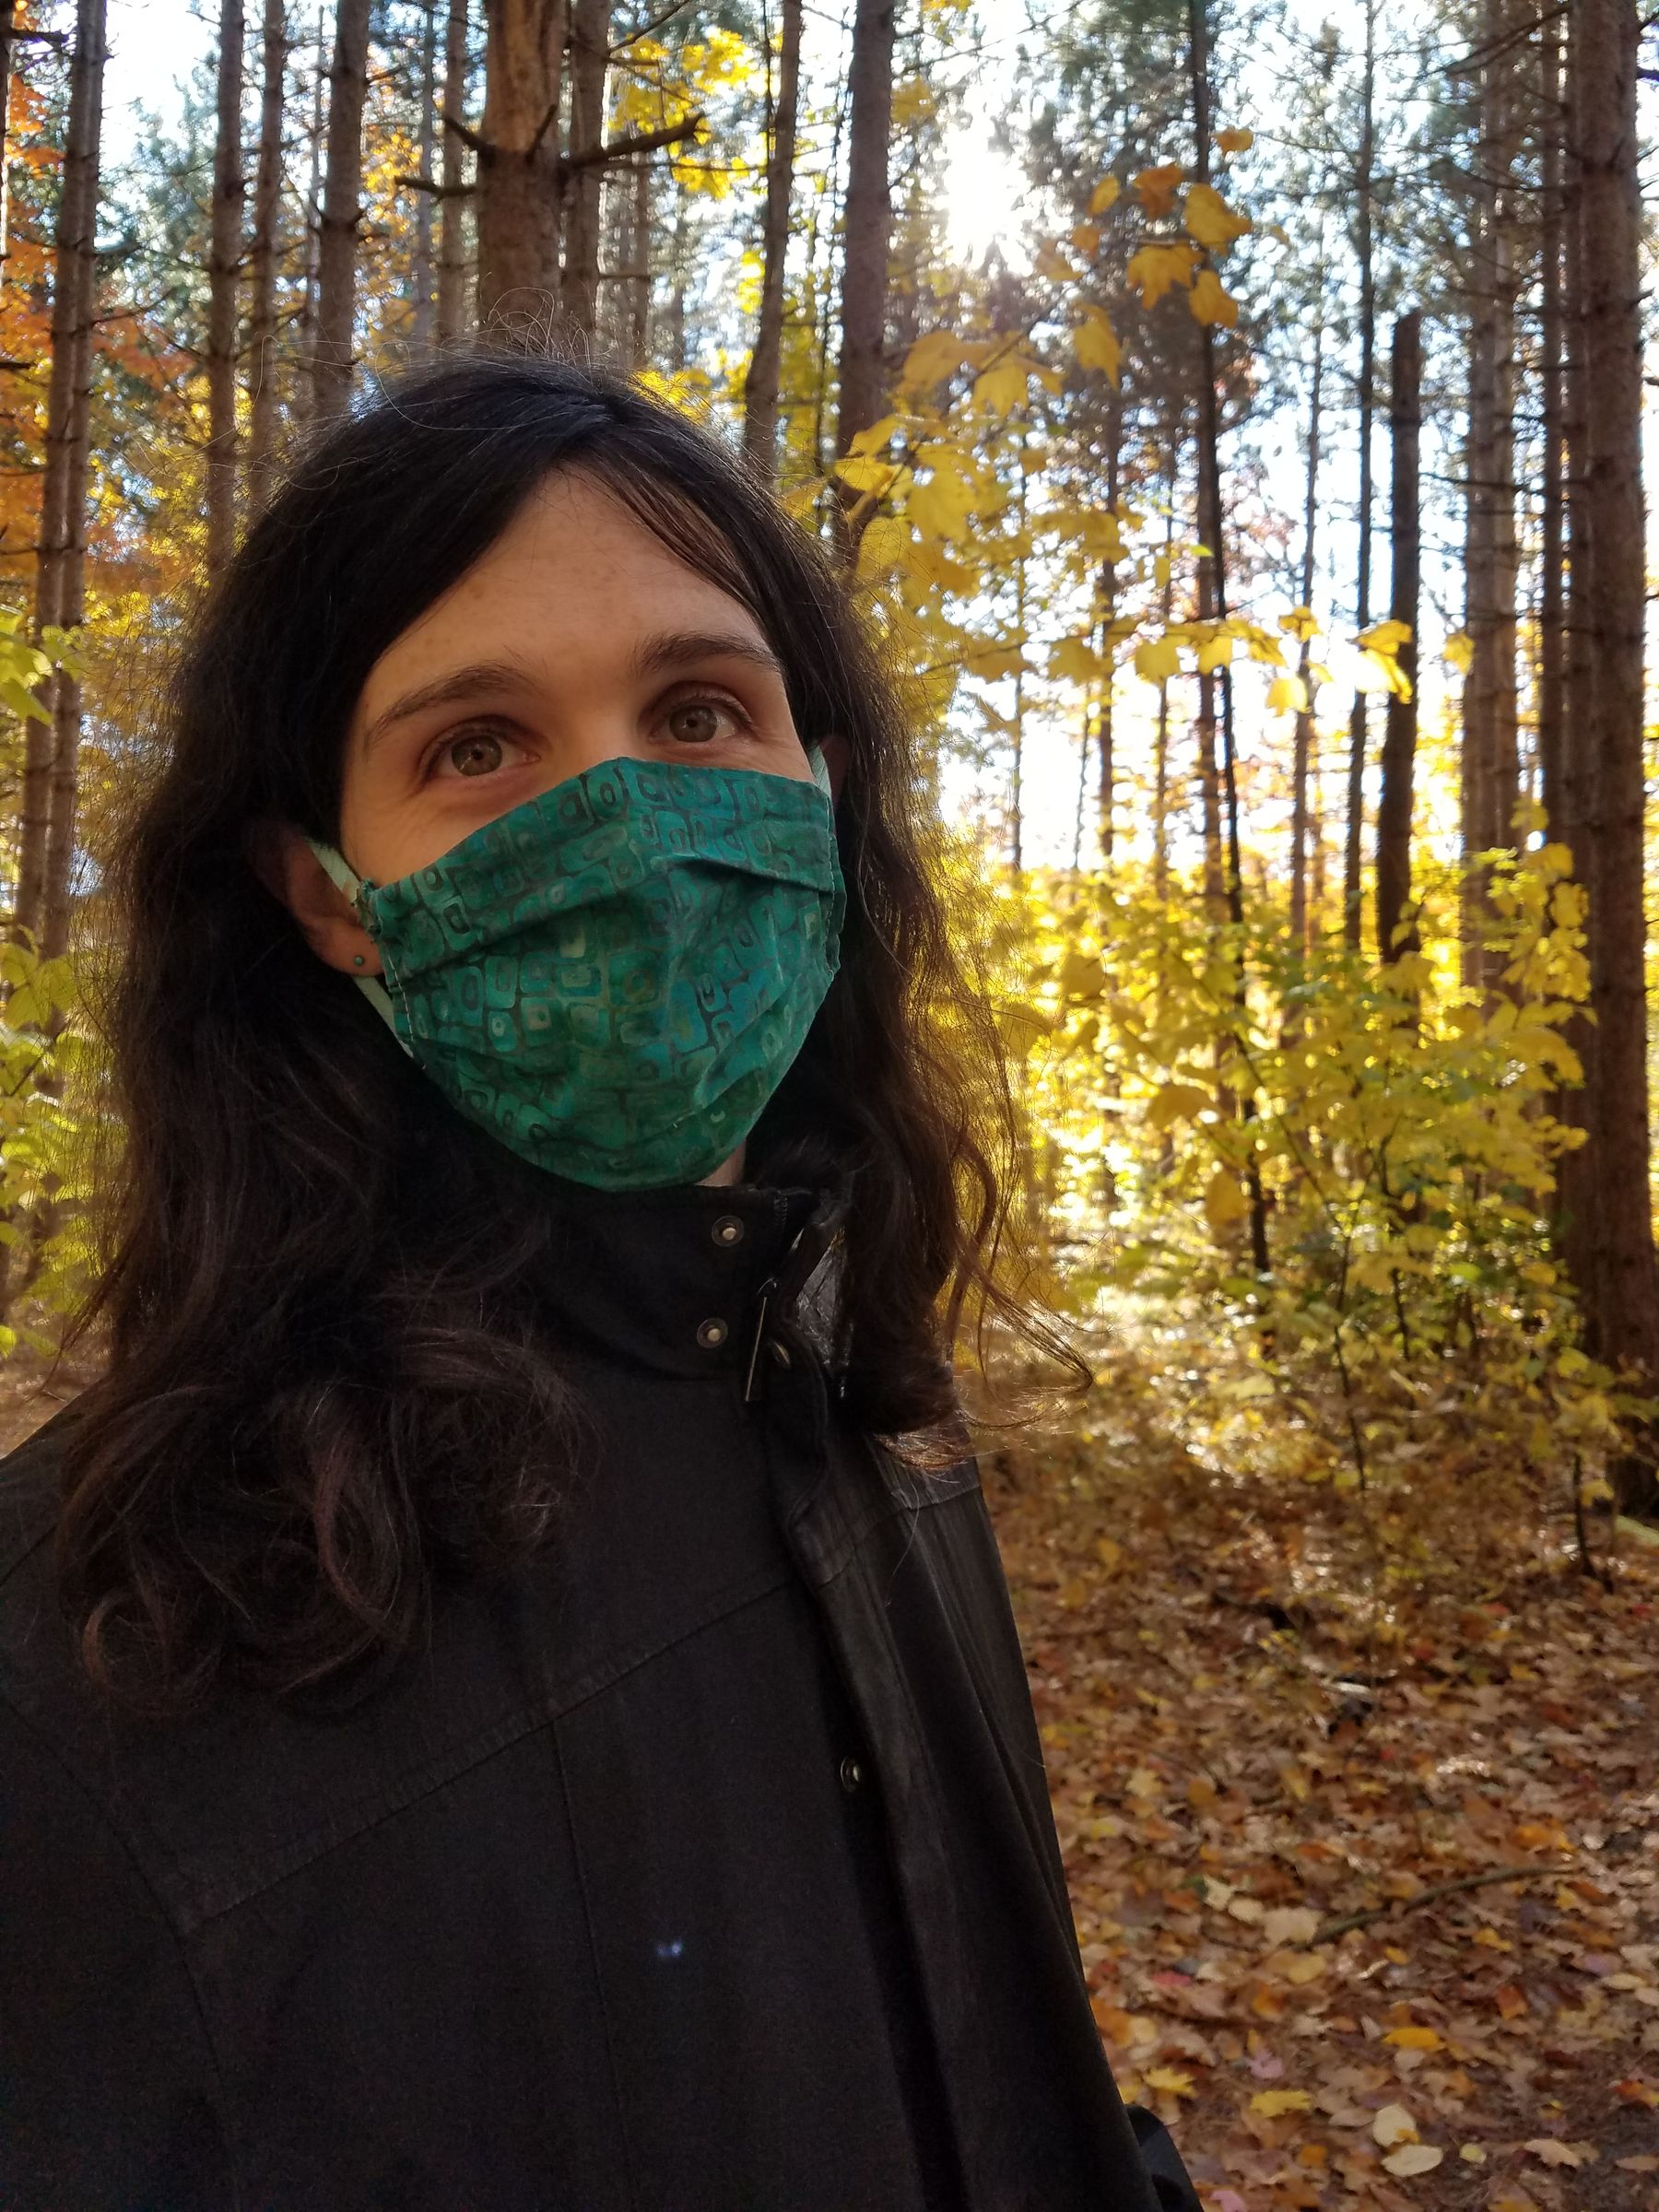 Picture of me in a black coat and a teal mask, standing in the shade of the woods that's covered in orange foliage.